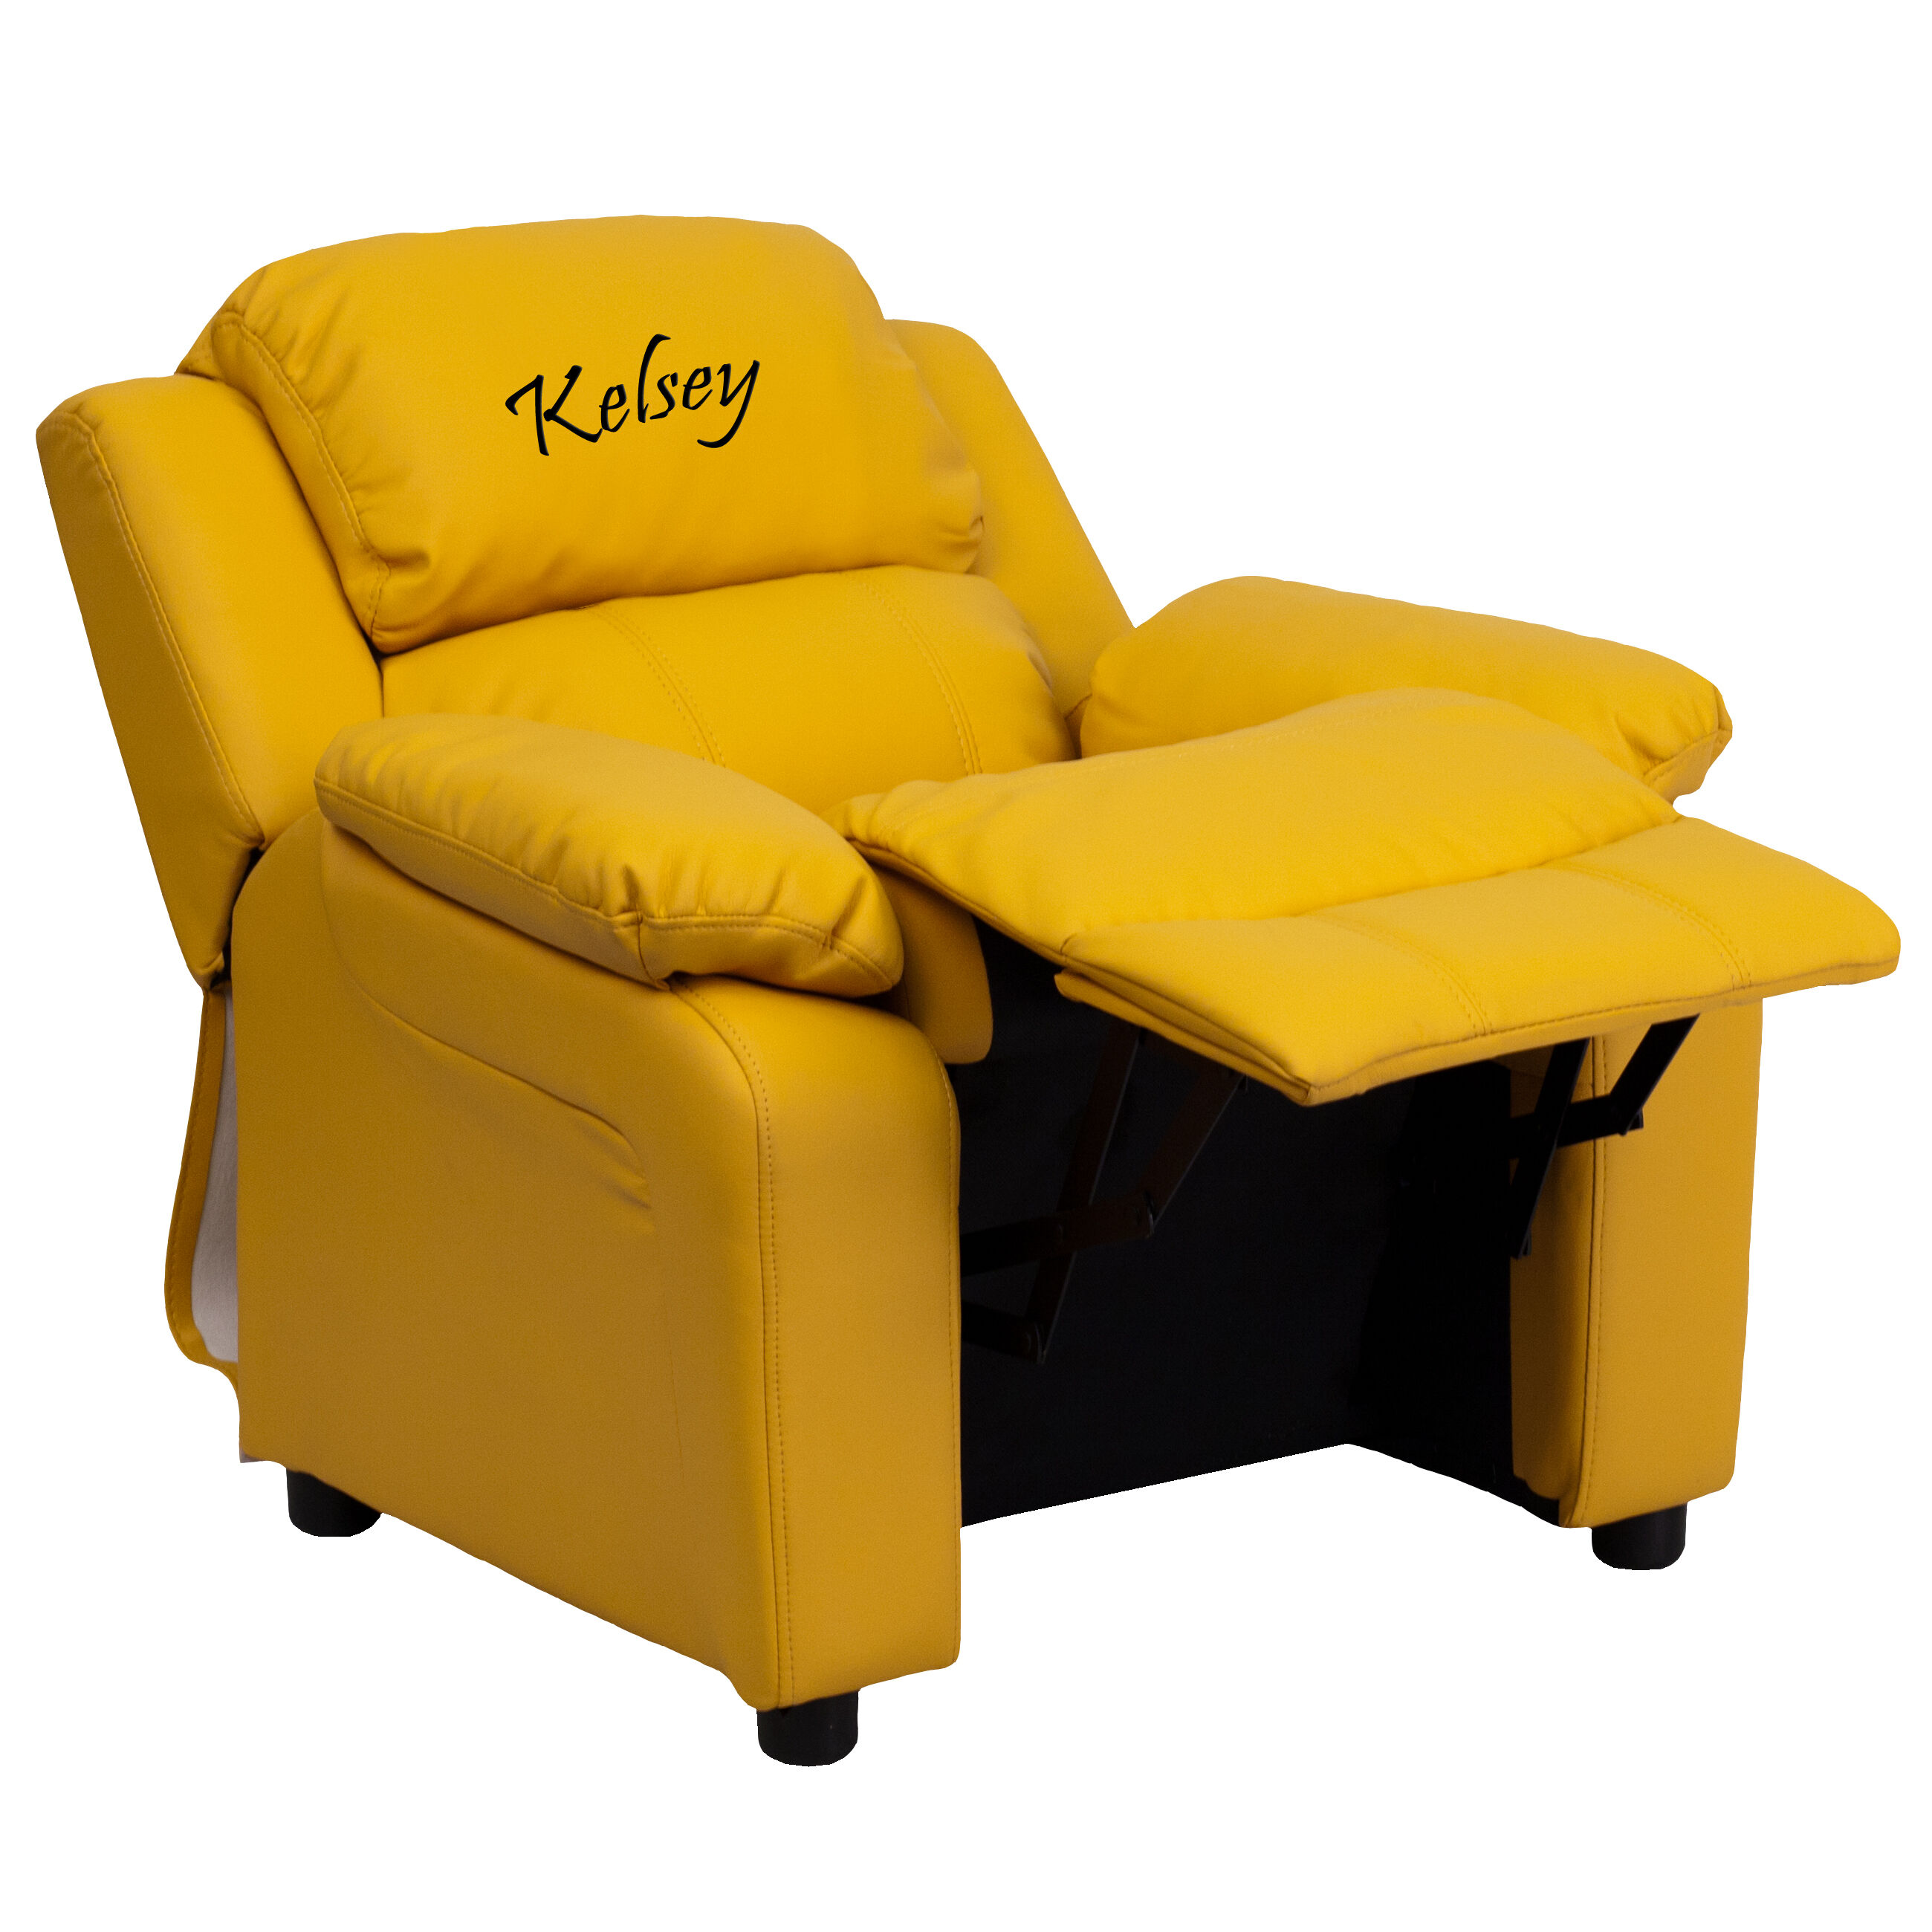 Our Personalized Deluxe Padded Yellow Vinyl Kids Recliner With Storage Arms  Is On Sale Now.